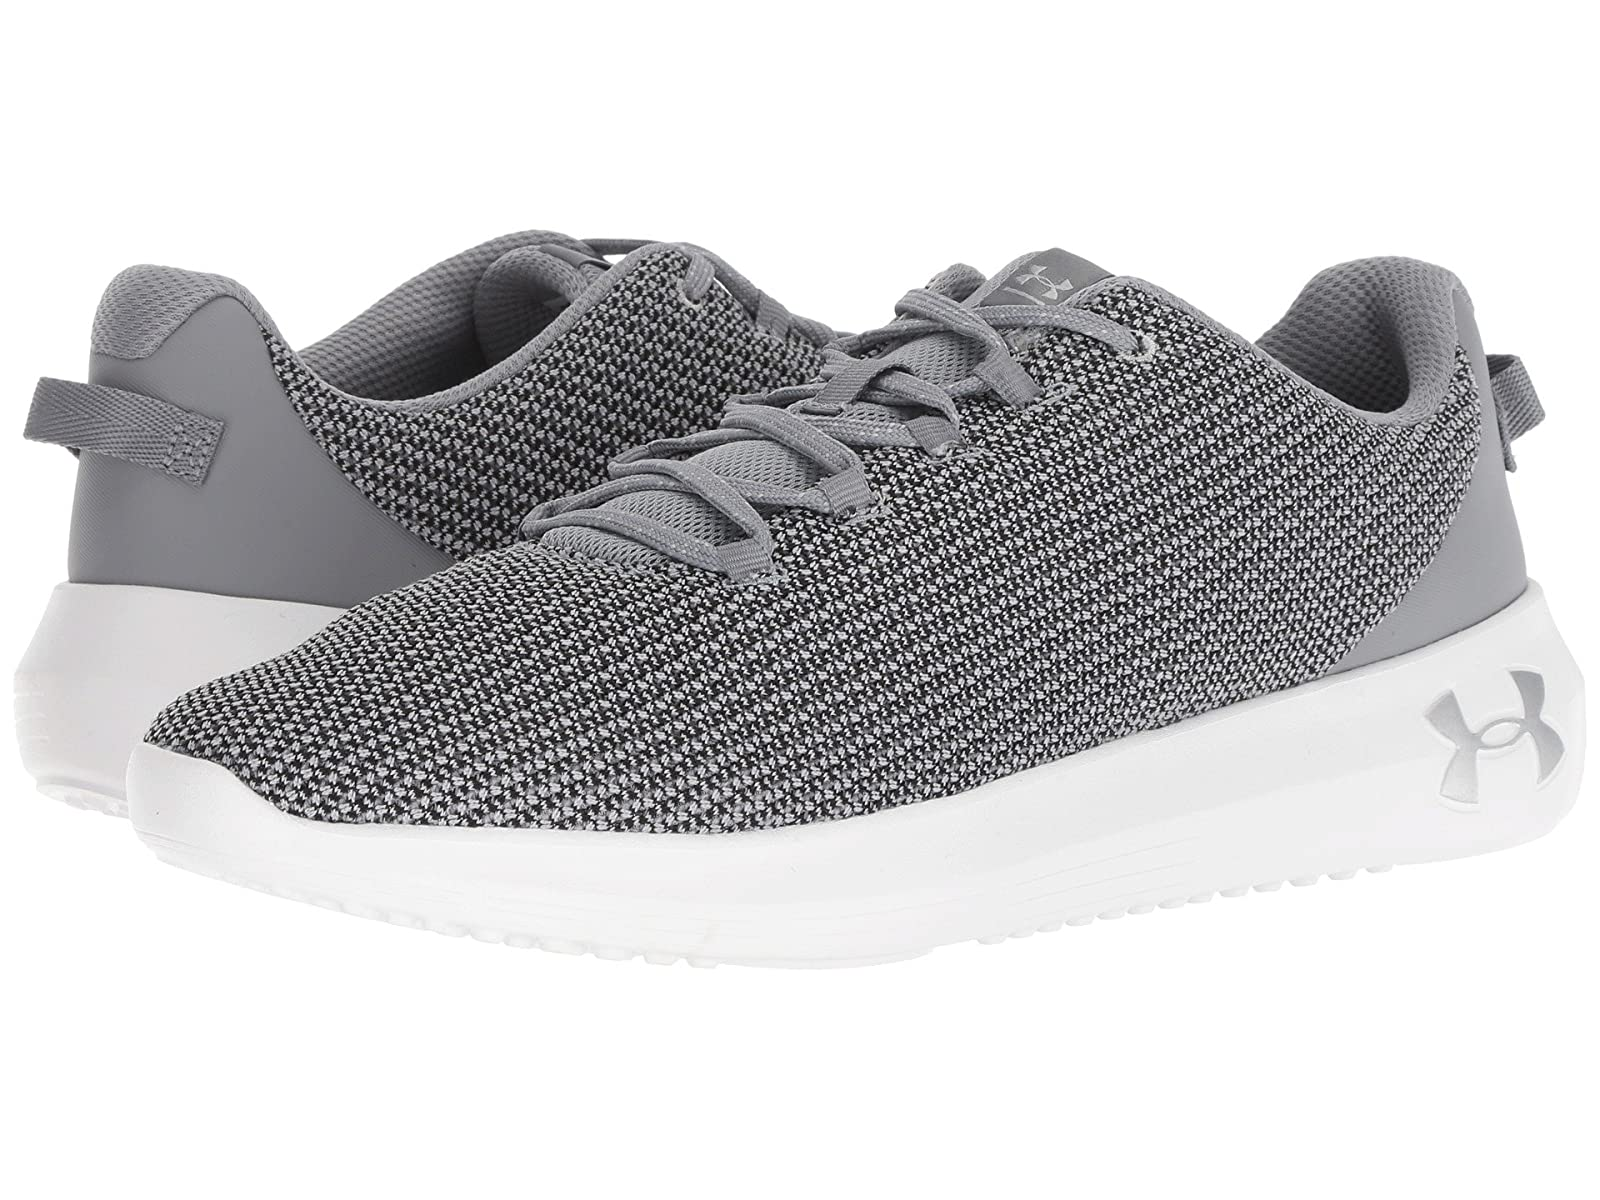 Under Armour UA Ripple MTLAtmospheric grades have affordable shoes